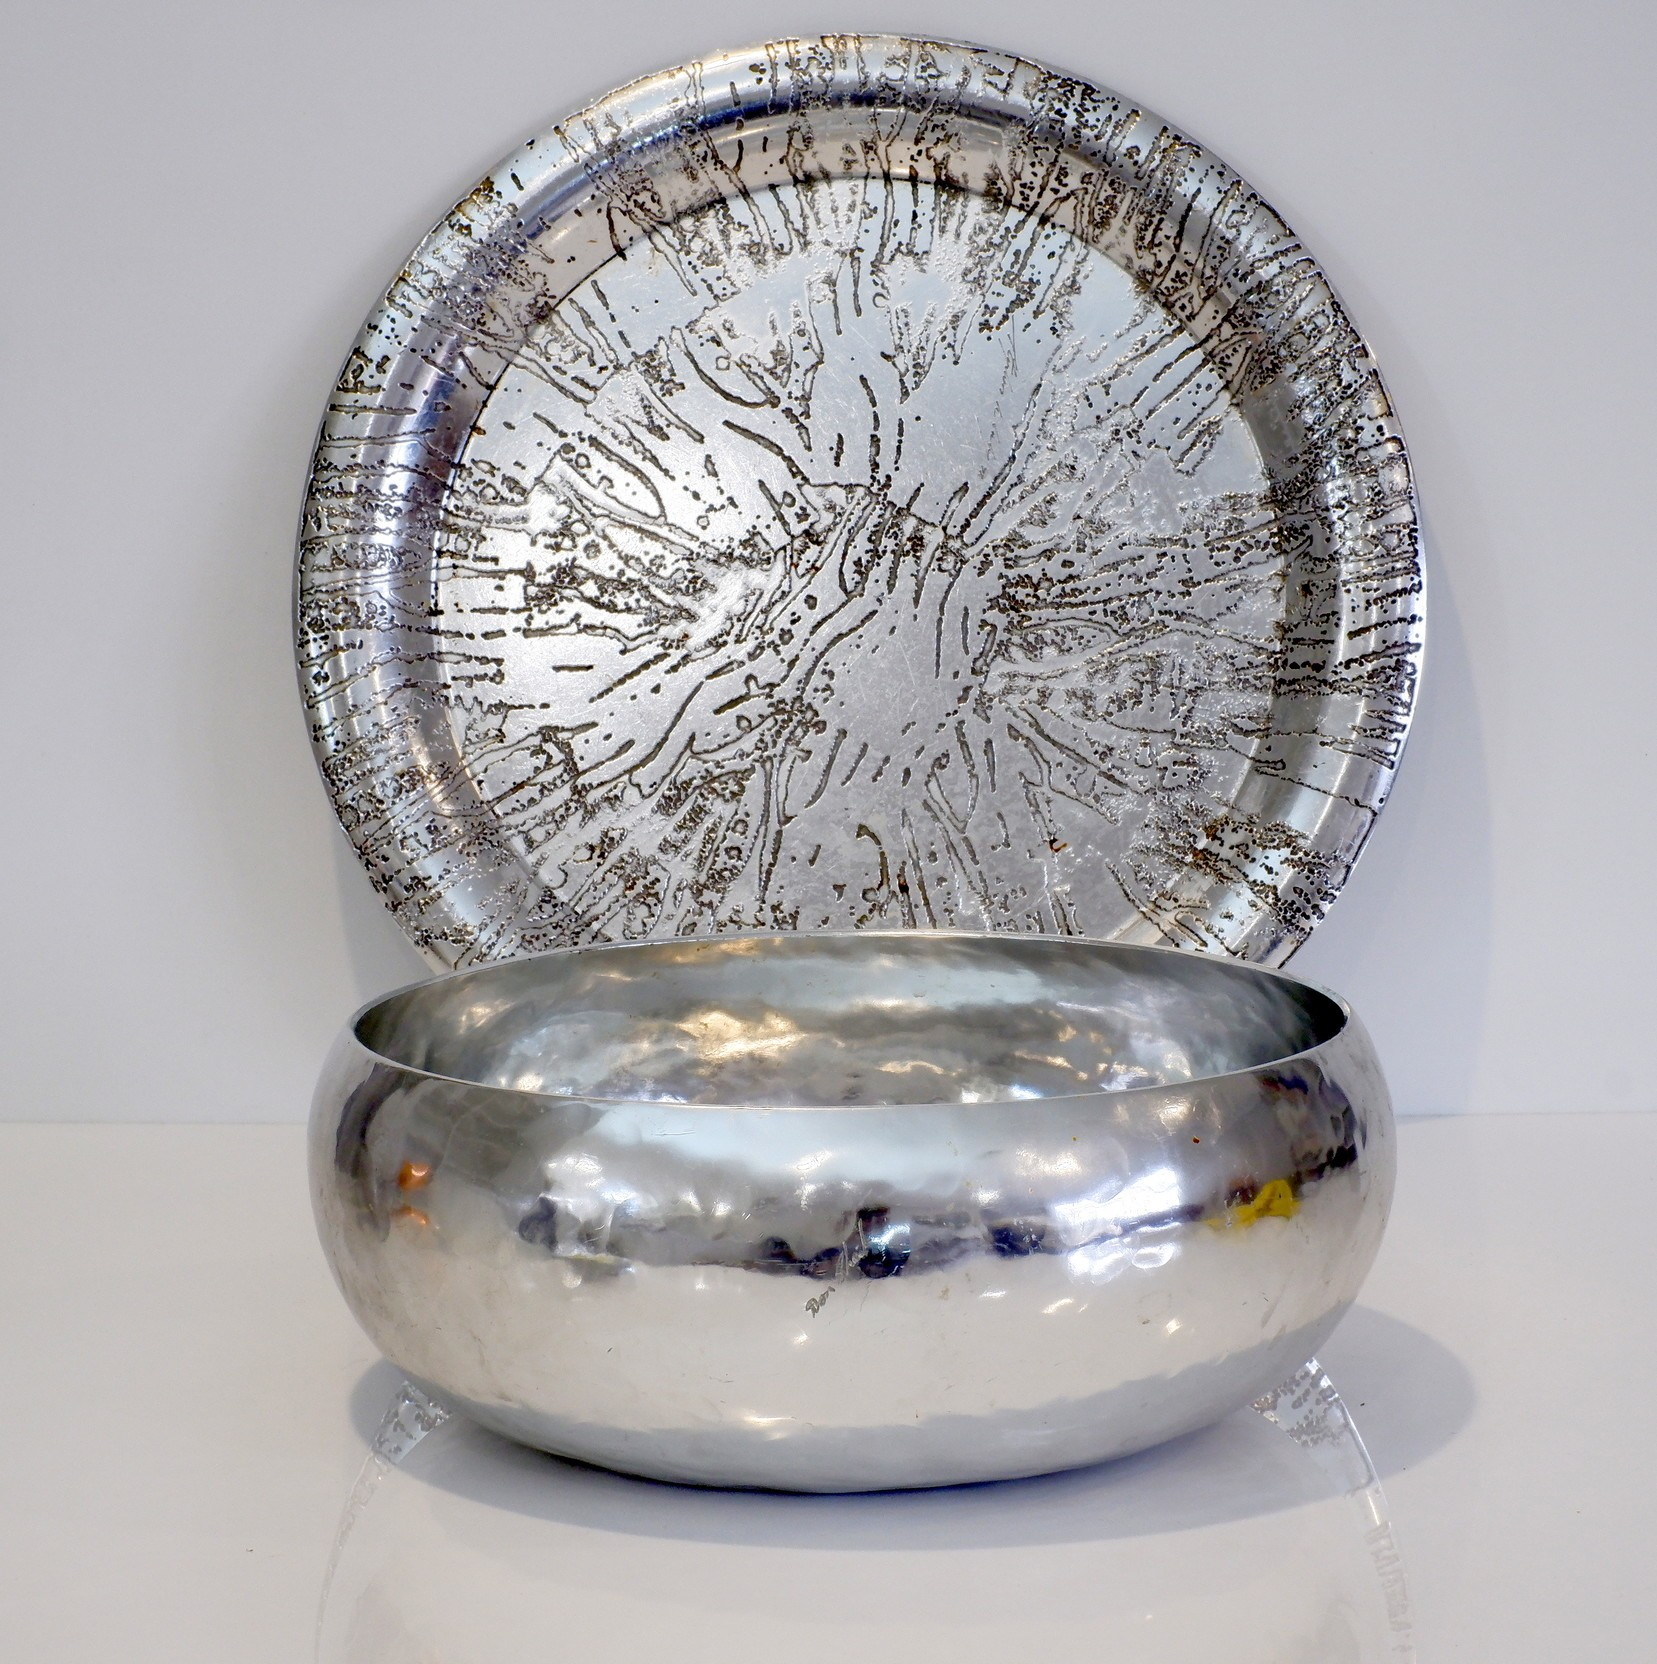 'Signed Don Sheil Hand Wrought Aluminium Bowl and an Unknown Tray'